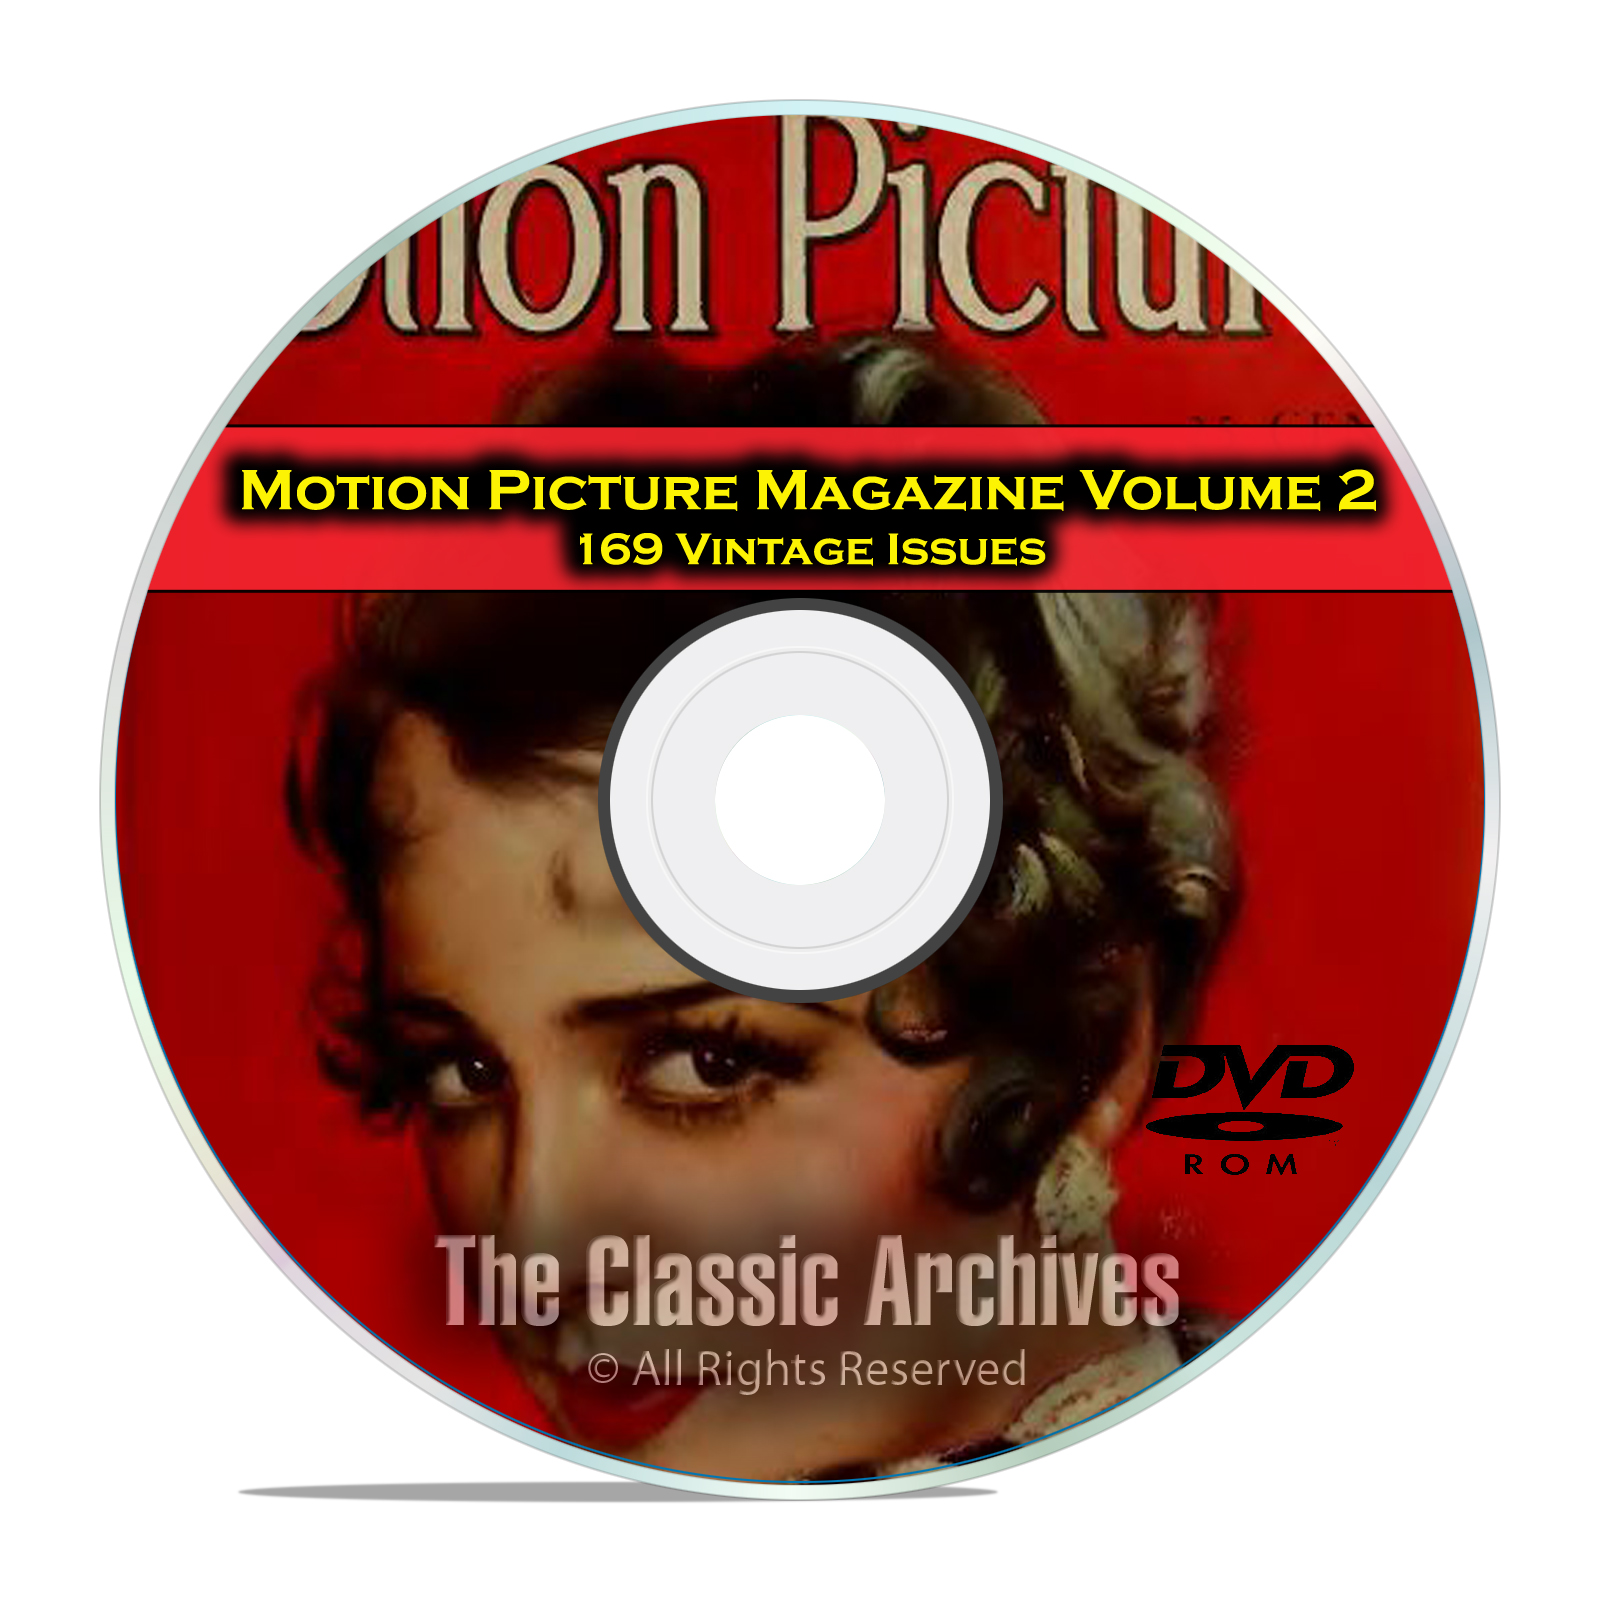 Motion Picture Movie Magazine, Volume 2, 169 Issues, 1925 - 1941, DVD - Click Image to Close